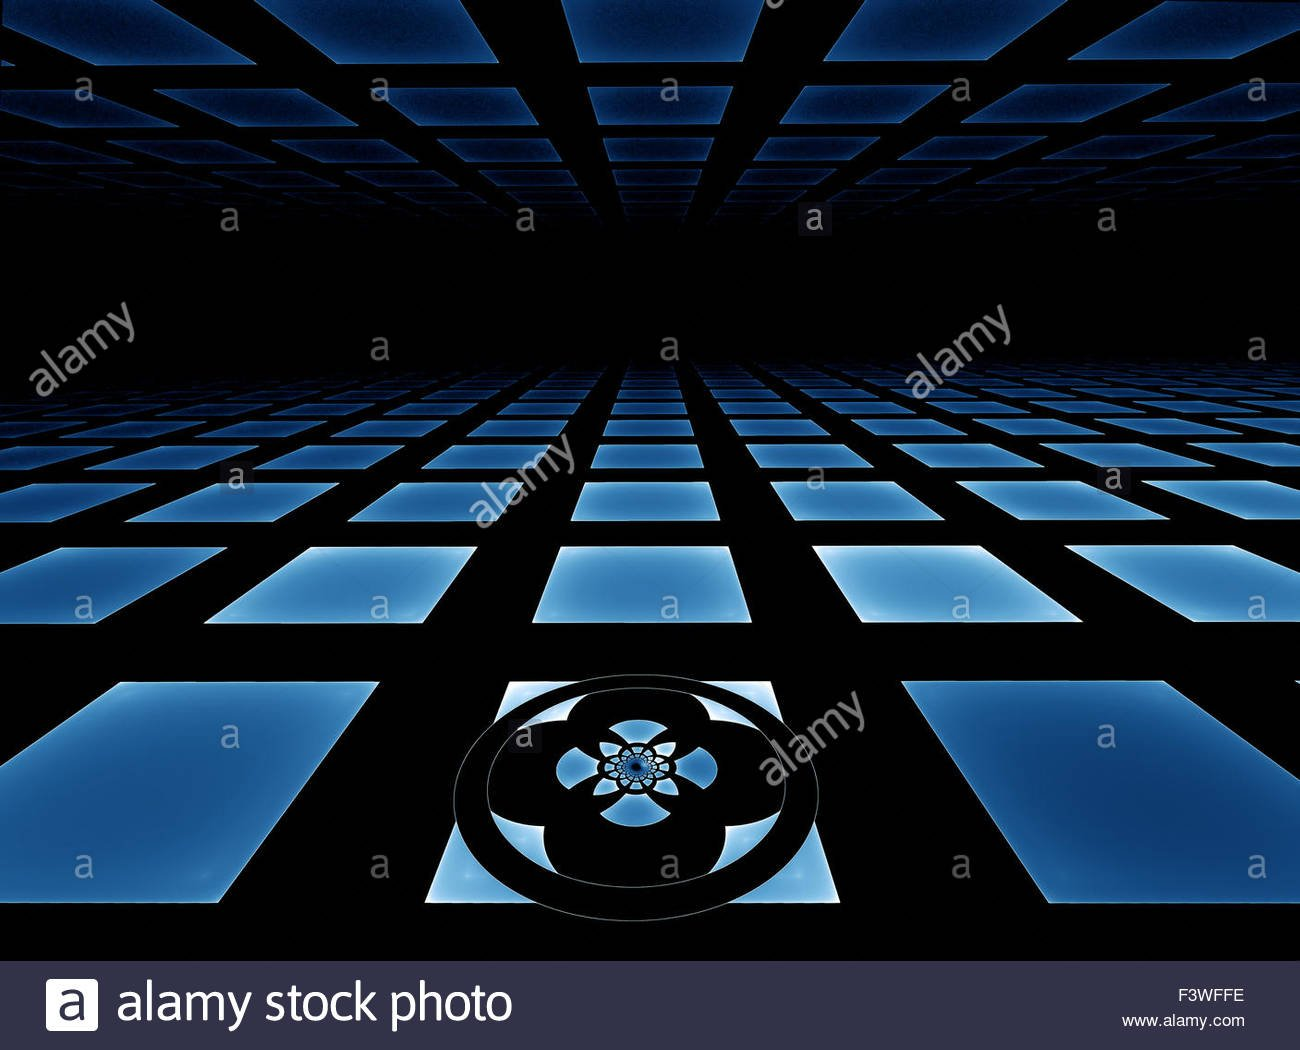 Dancefloor Background Stock Photos Dancefloor Background Stock 1300x1050